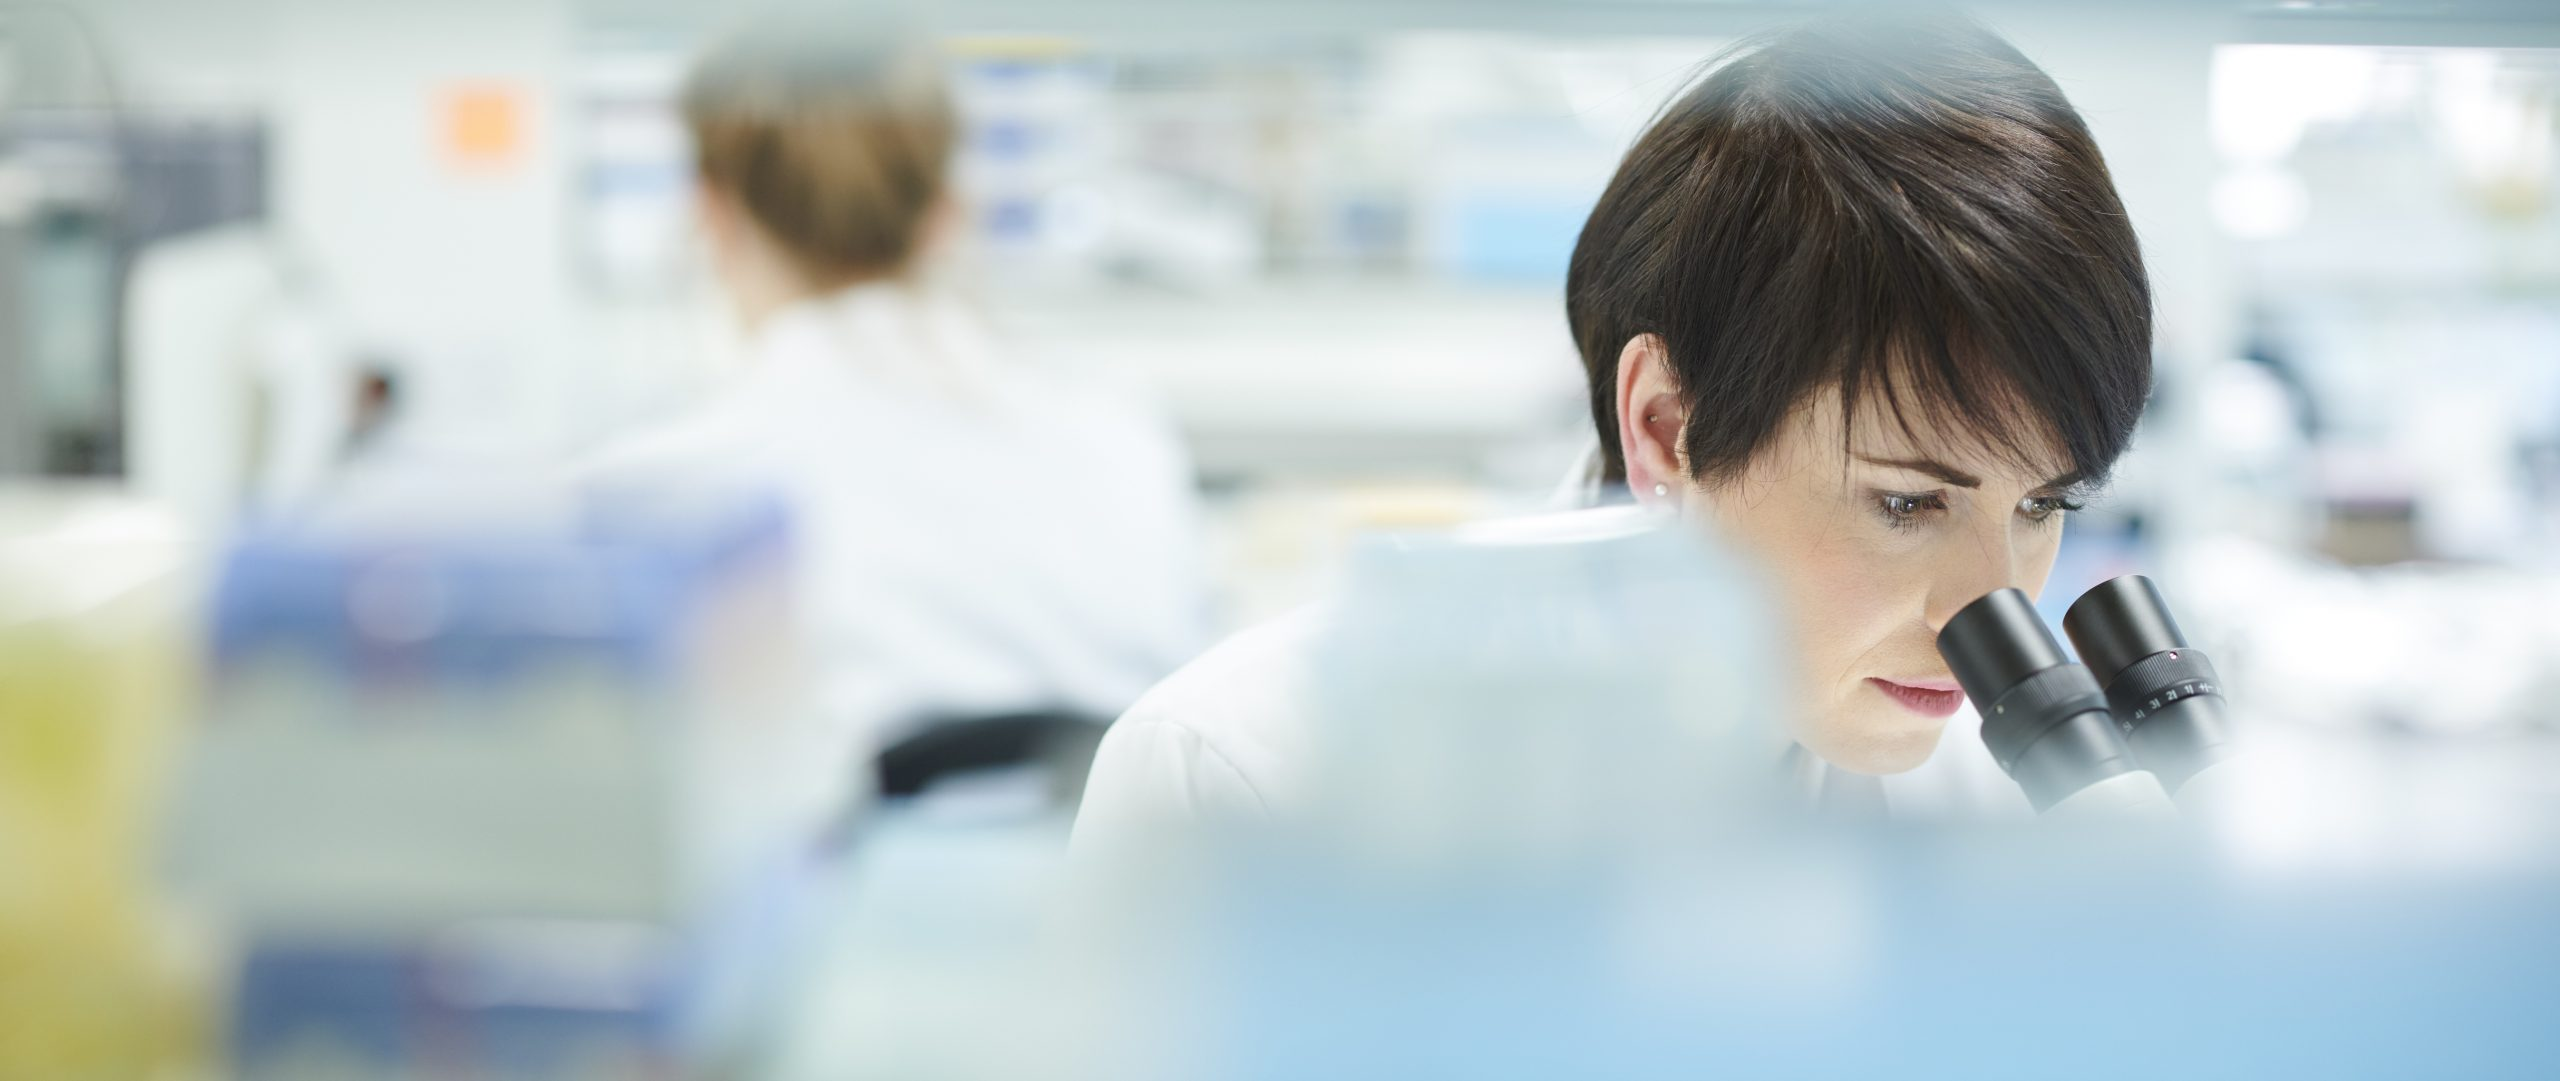 photo of woman in lab setting